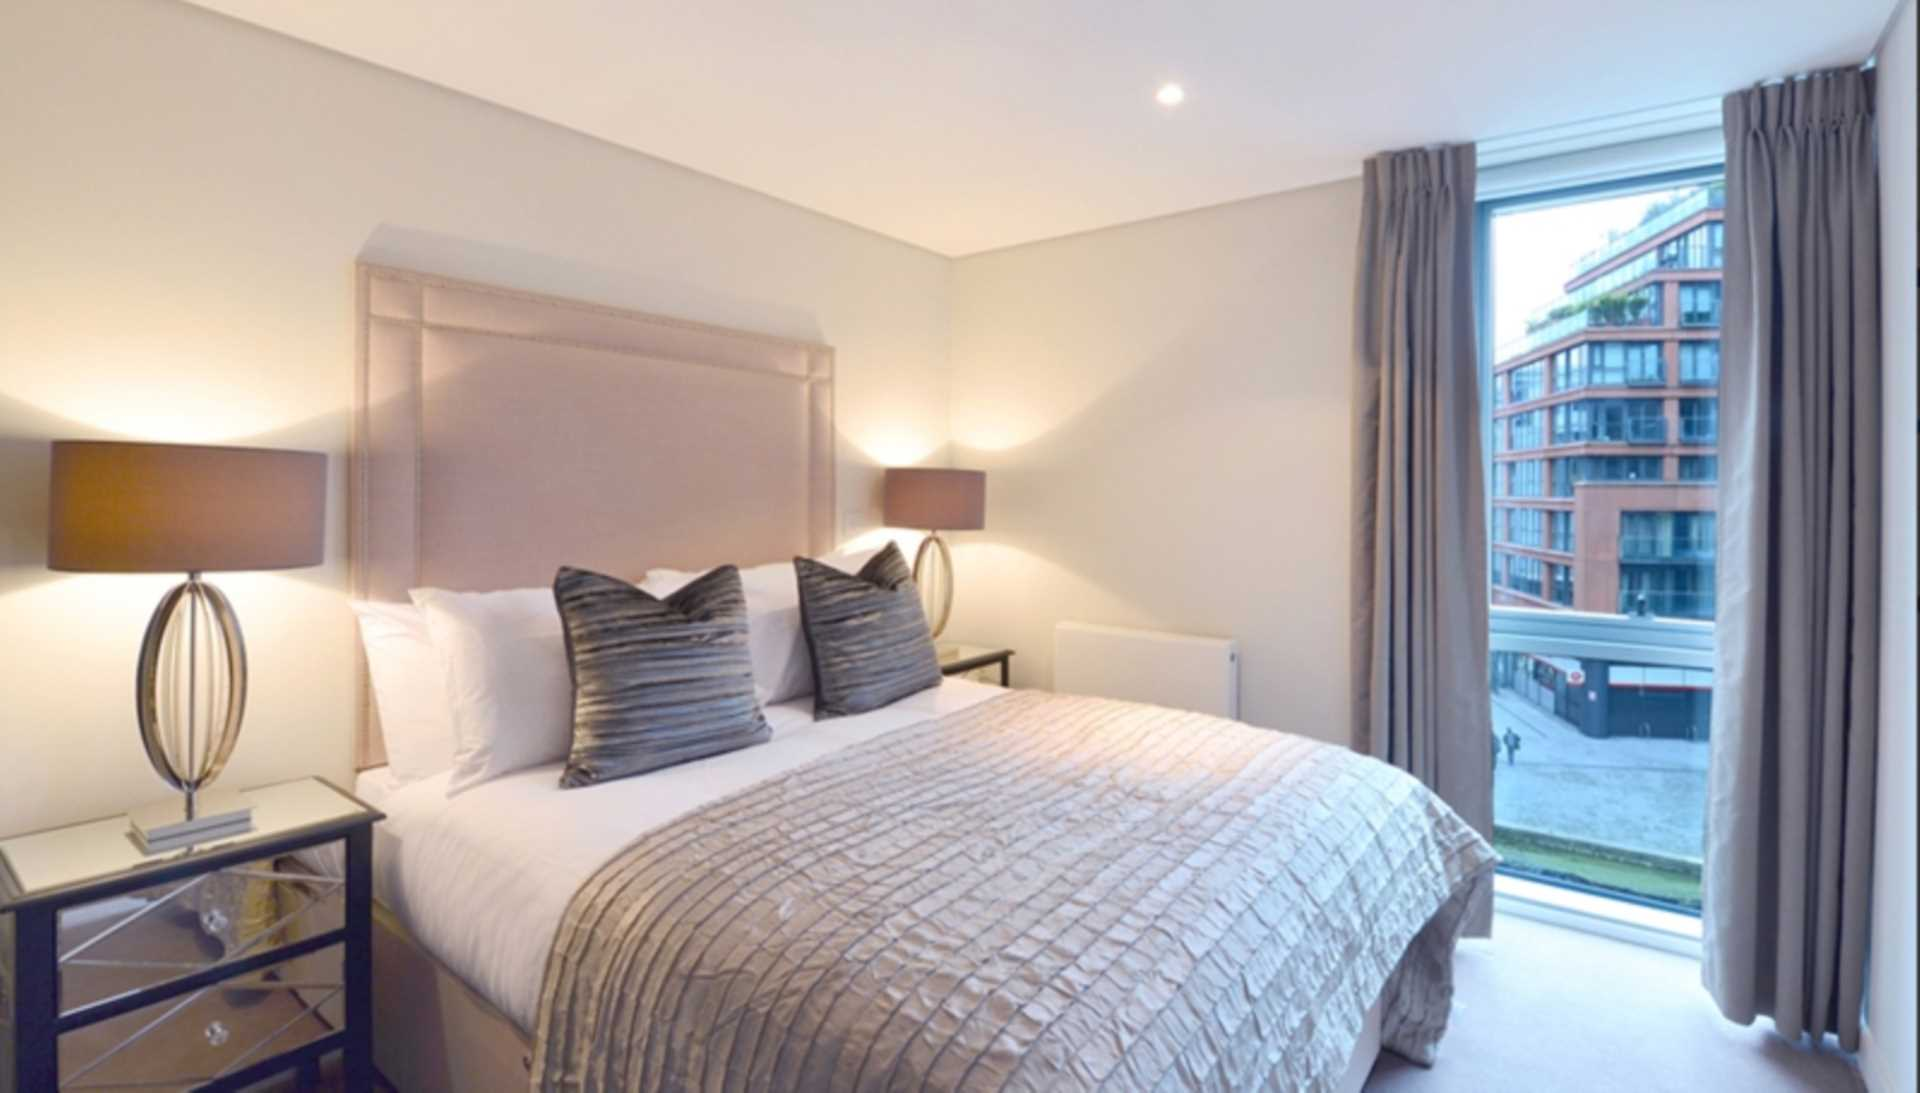 3 bedroom apartment to rent water views merchant square paddington london w2 1an for Three bedroom apartments london